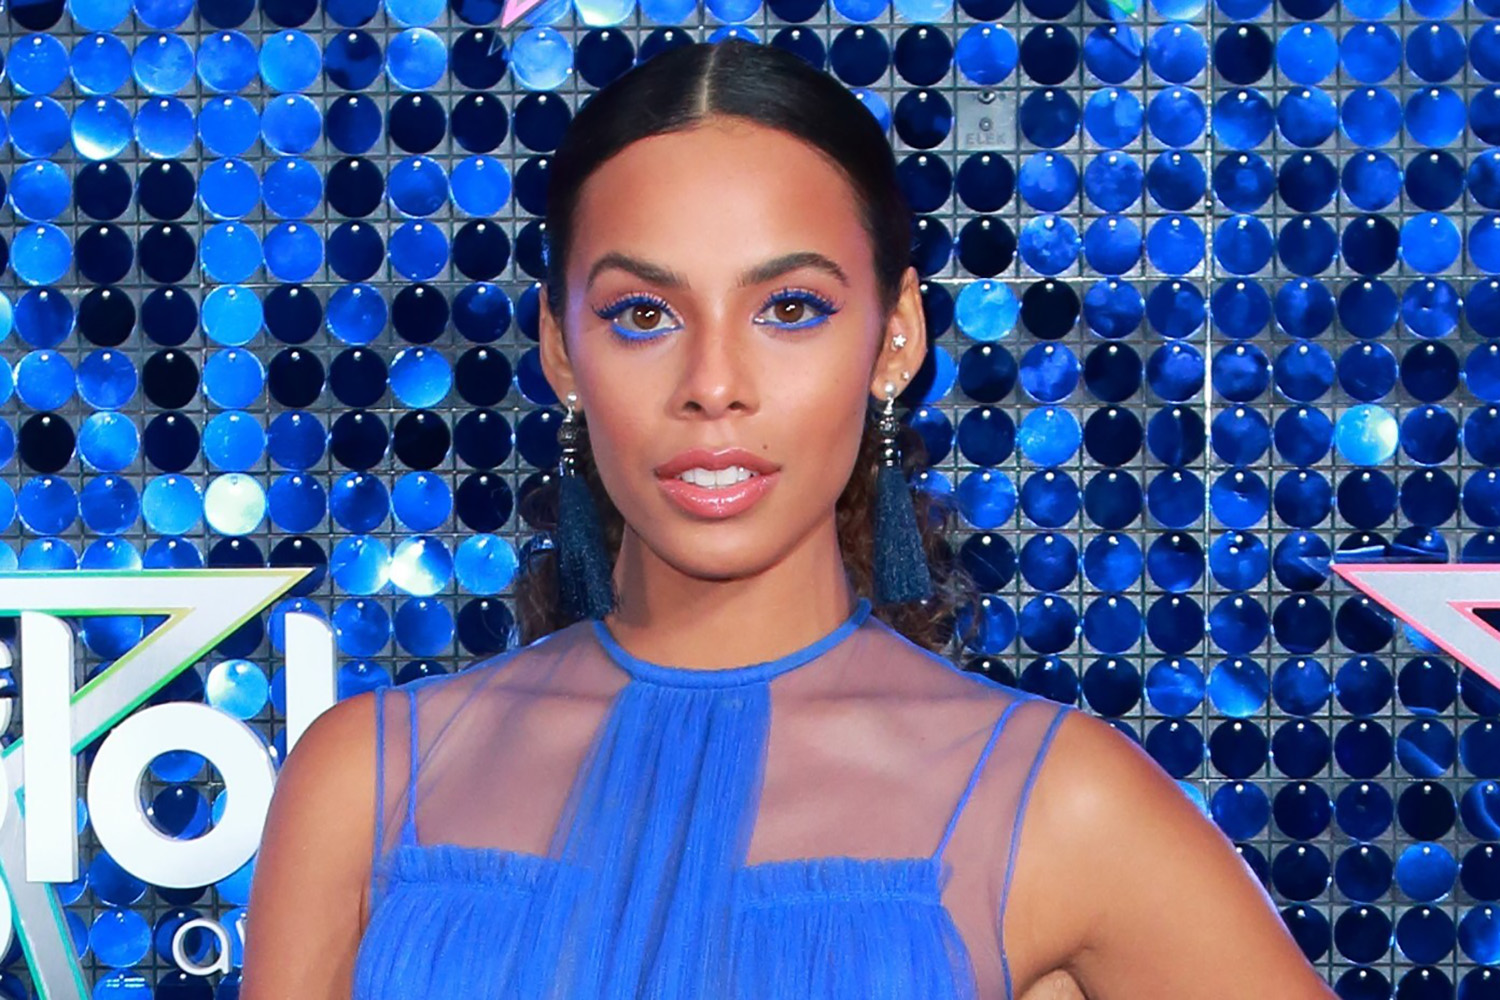 Pregnant Rochelle Humes shows off unborn son's first pair of luxury shoes